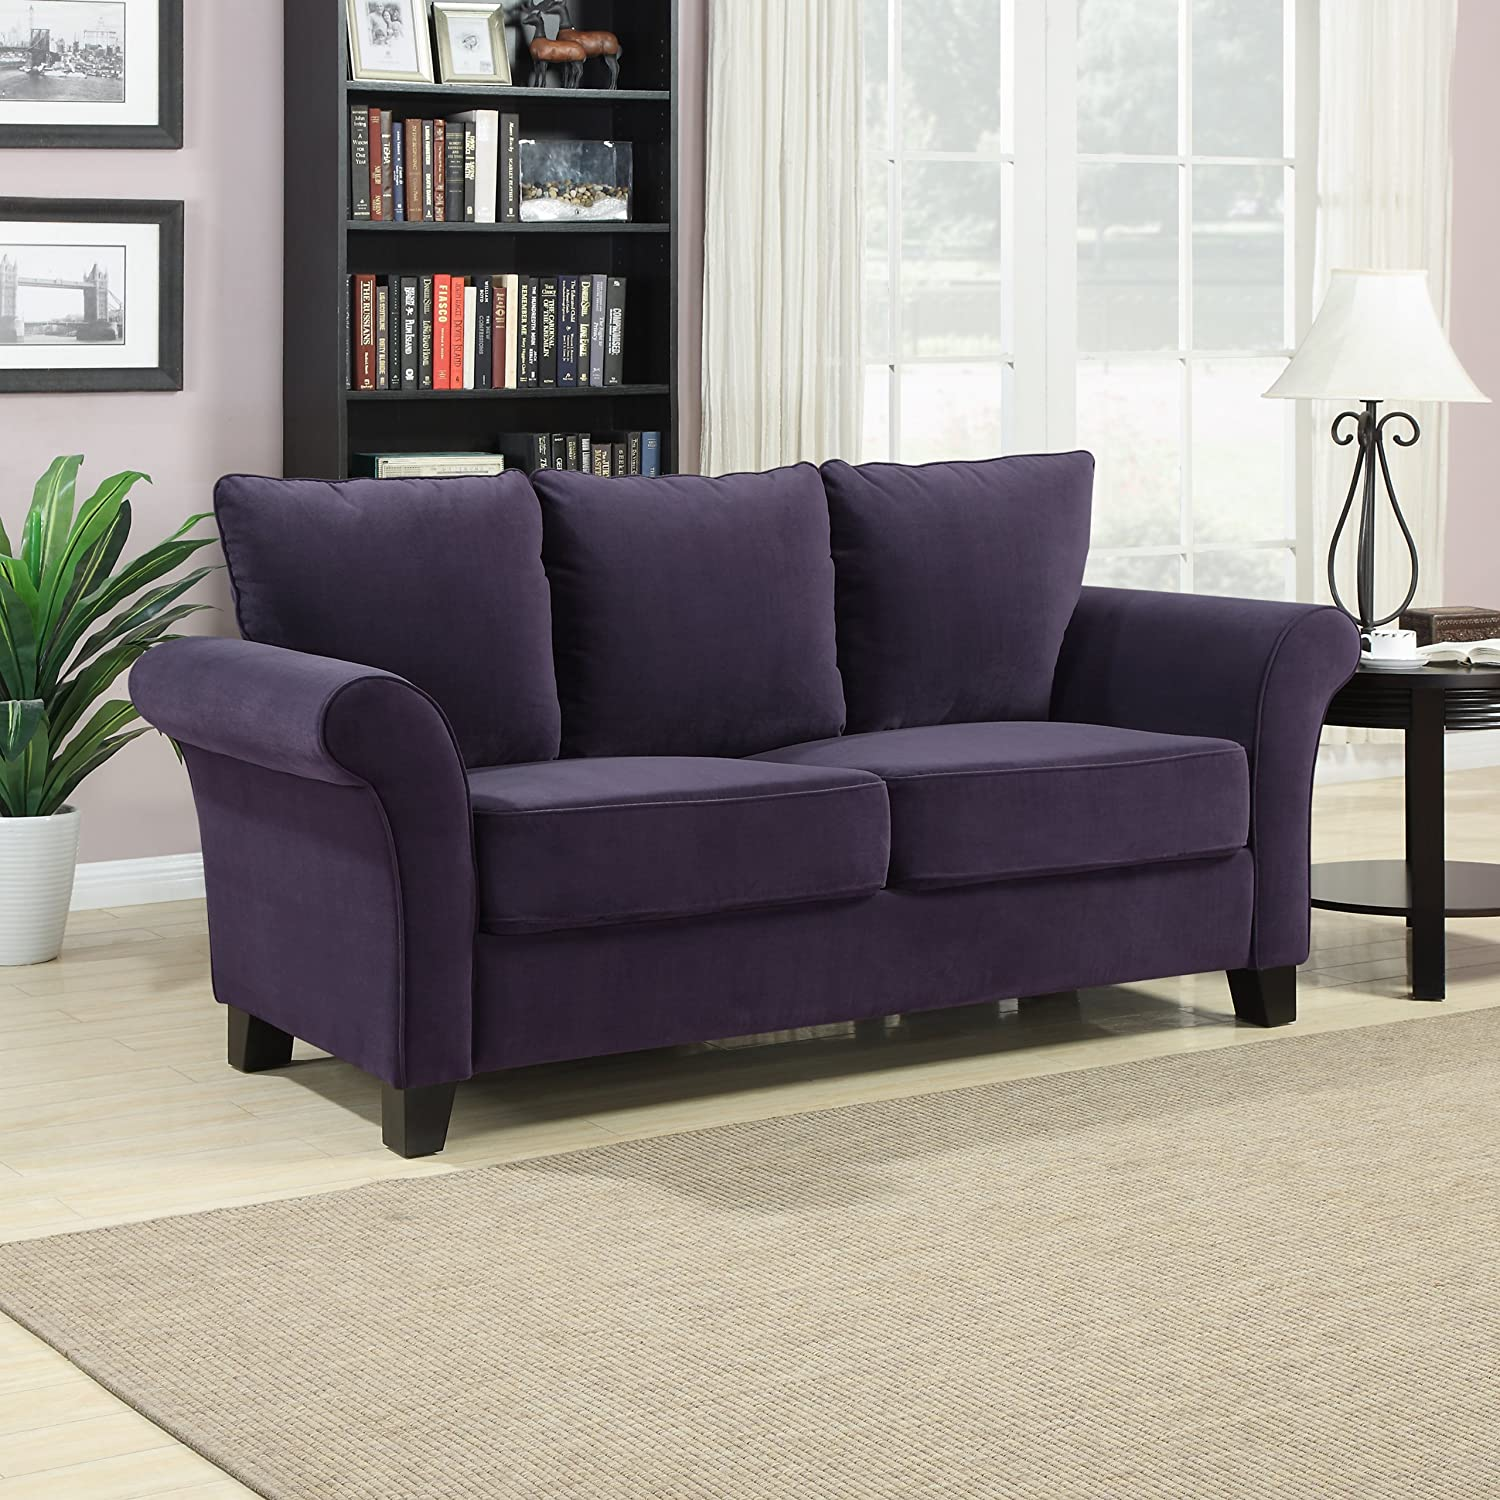 Amazon Handy Living Milan Sofa Plum Velvet Kitchen & Dining